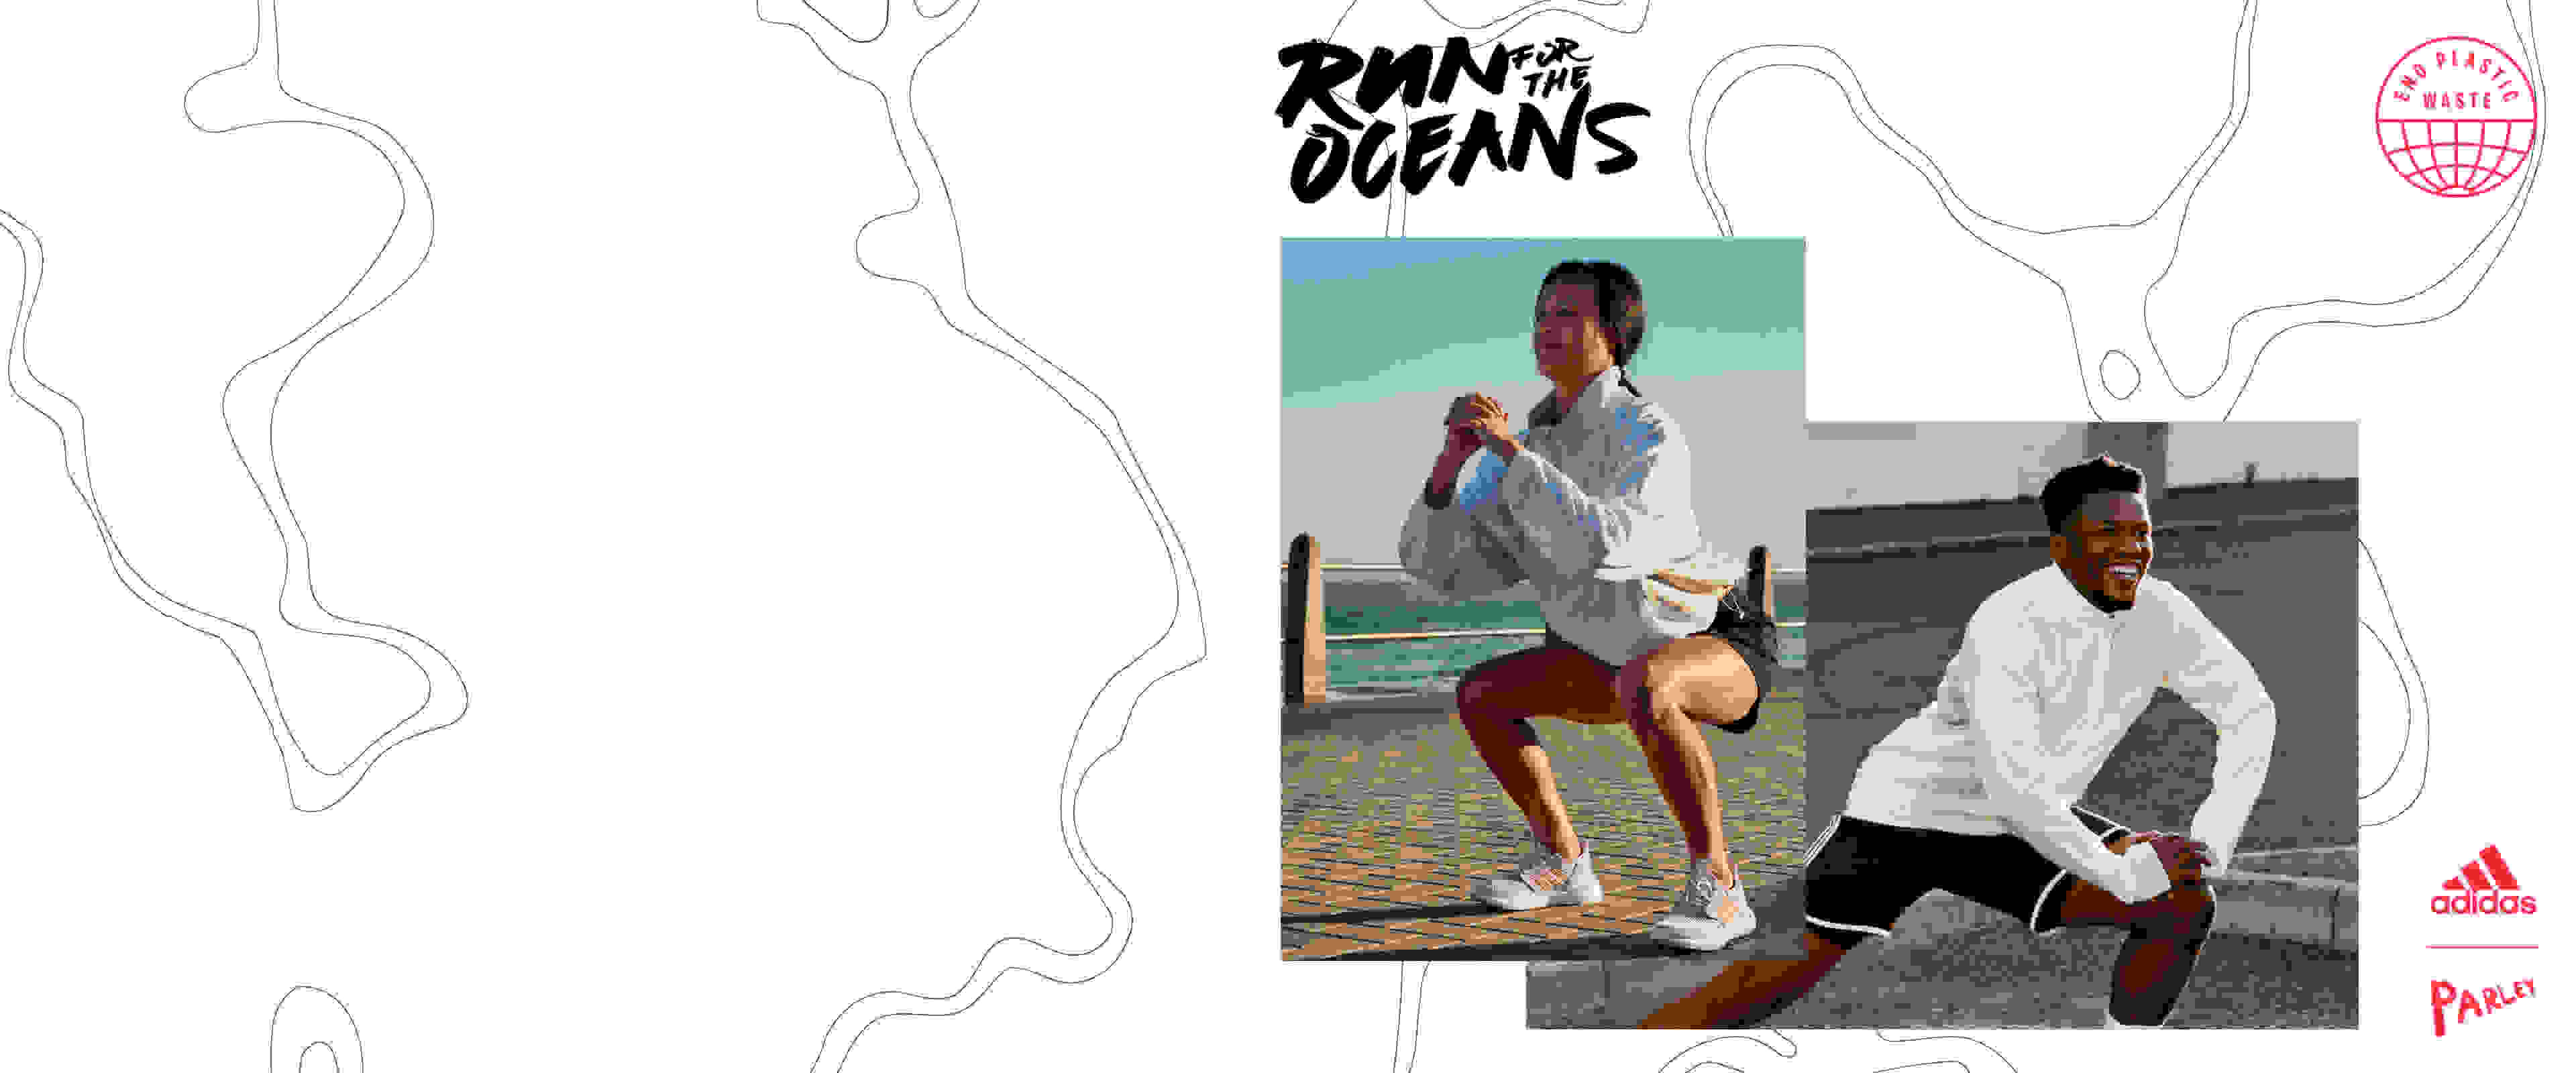 Men and women are warming up to get ready for Run For The Oceans.